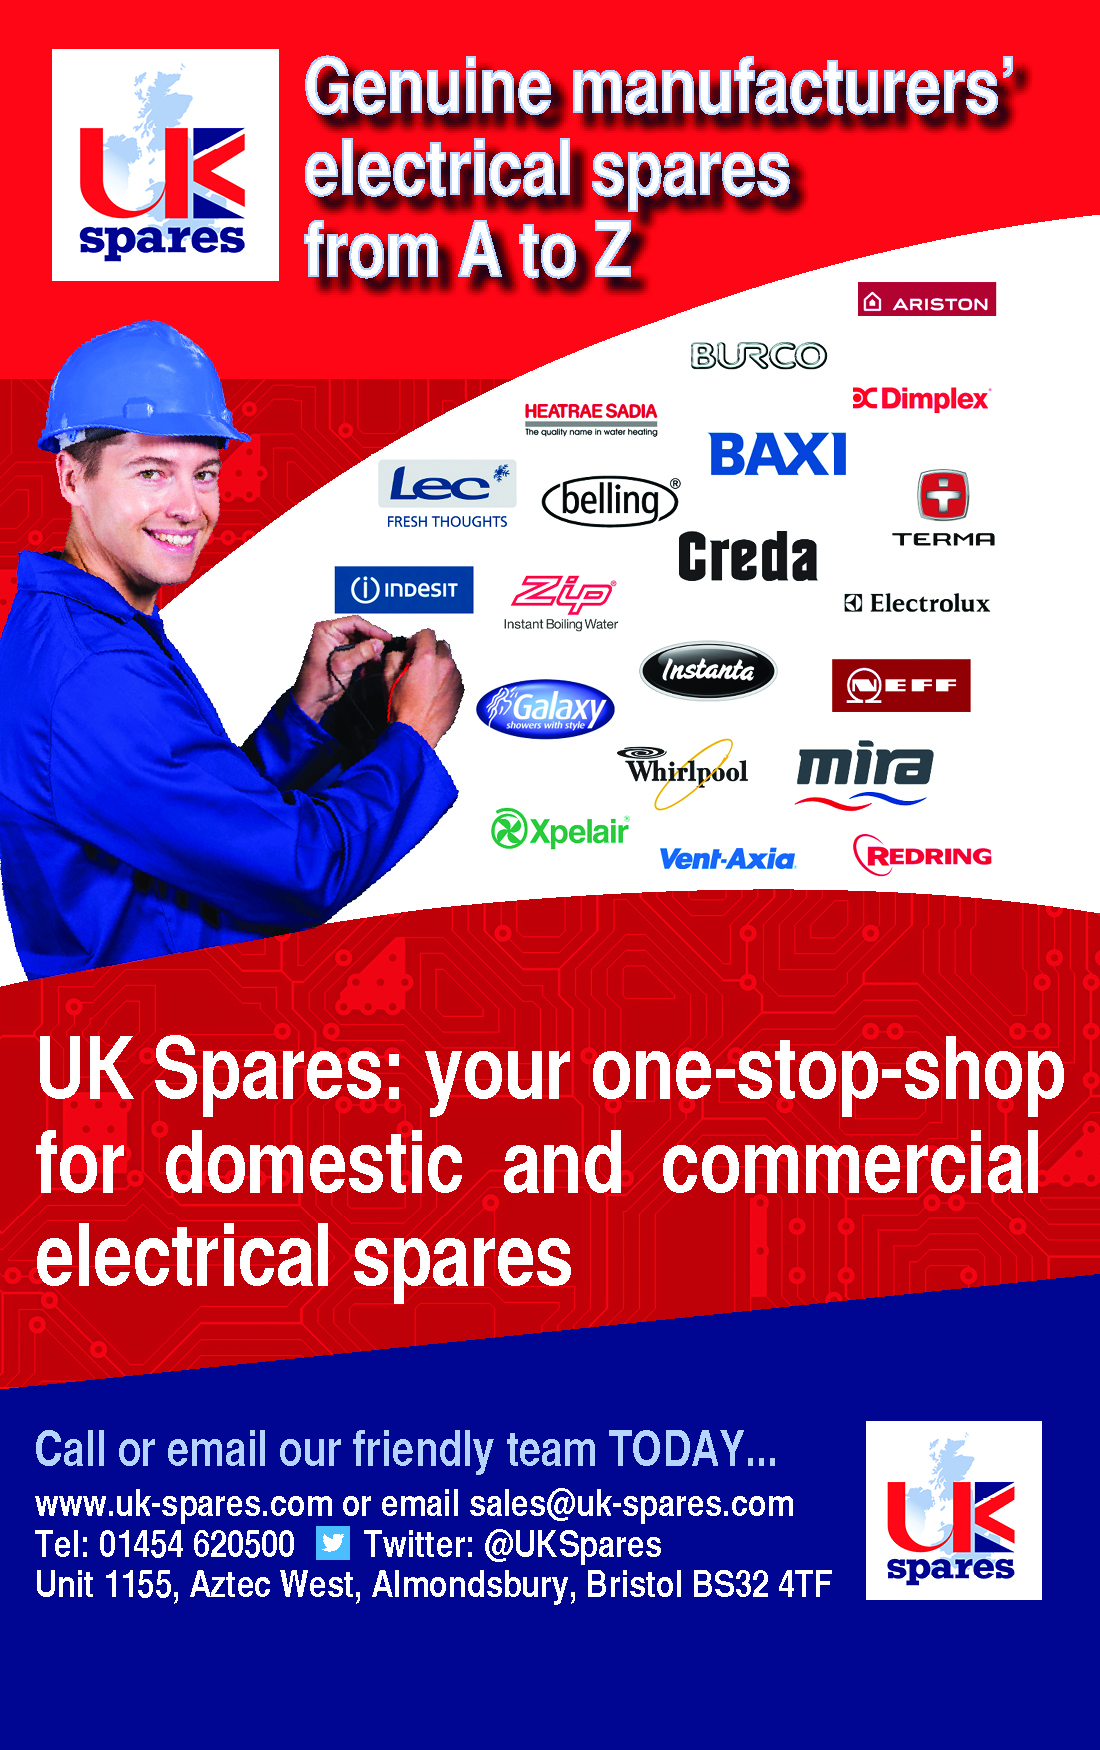 Genuine manufacturers electrical spares